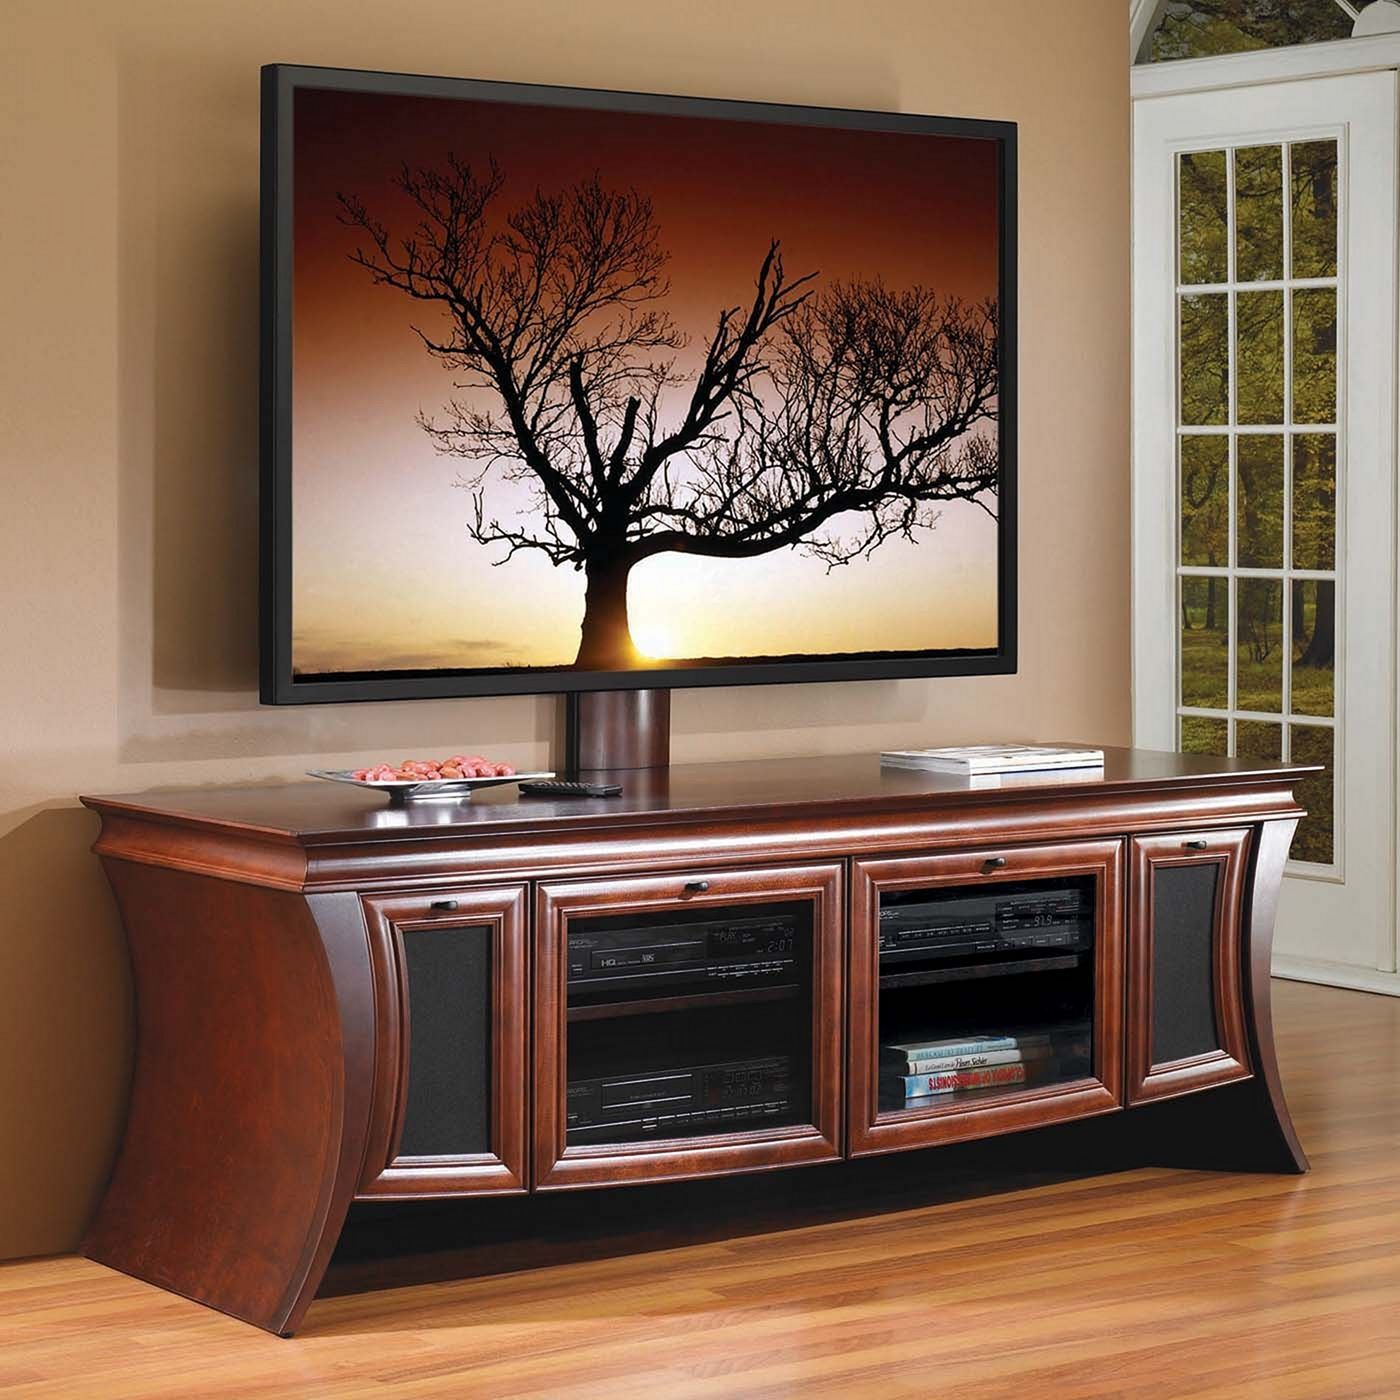 Most Popular Tv Table Design Ideas For Entertainment In Your Home Teracee Tv Stand Furniture Tv Stand Wood Flat Screen Tv Stand